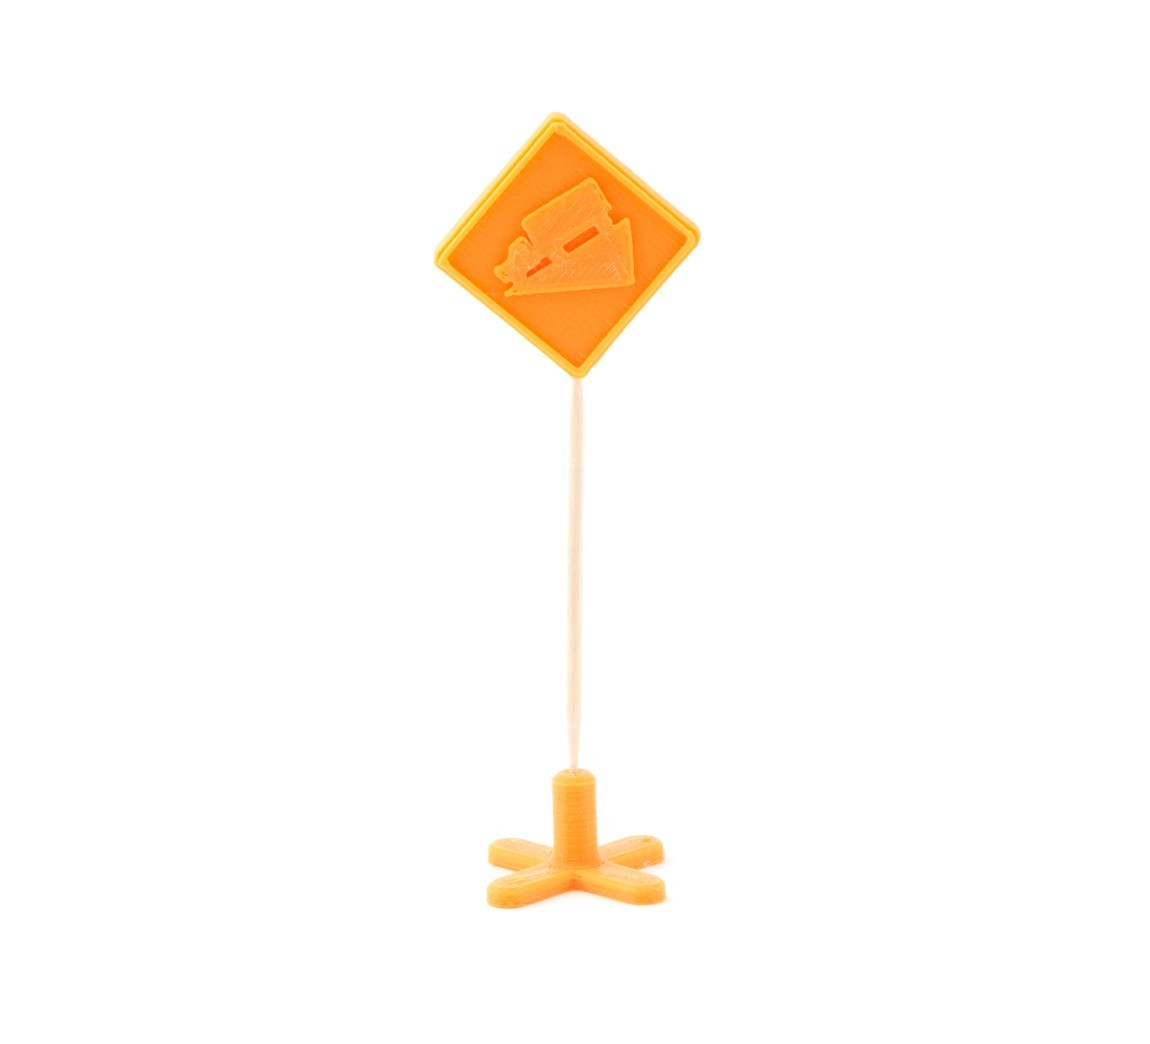 dad355512933513adea5ab2c47ce22d6_1449531097854_11.20.15-product-shoot-138.jpg Download free STL file Traffic Road Signs • 3D printable template, Emiliano_Brignito